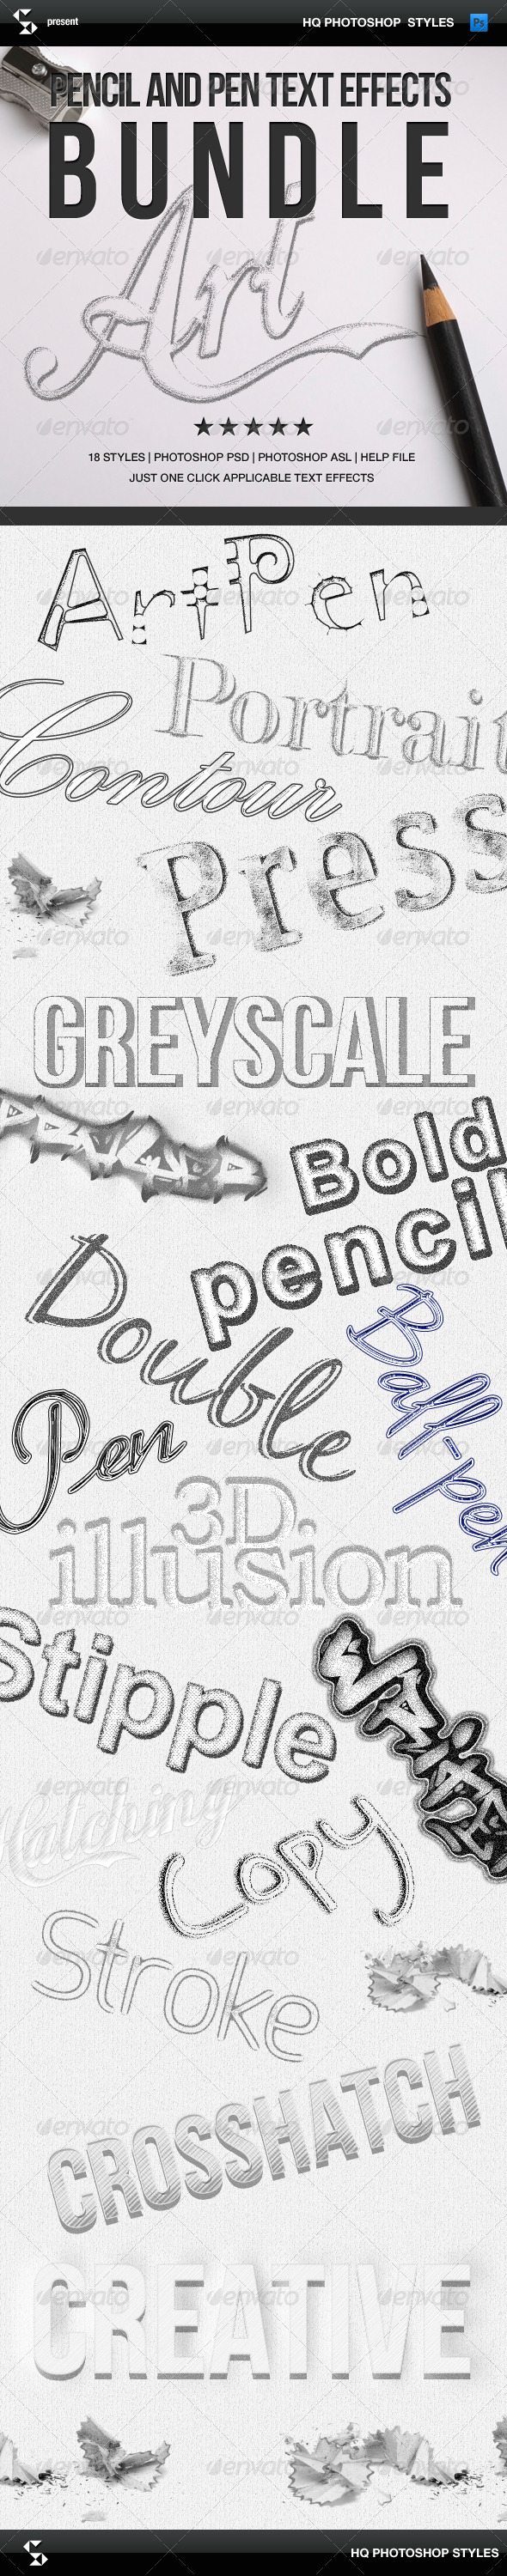 GraphicRiver Pencil Styles Bundle Pencil Art Text Effects 7055587